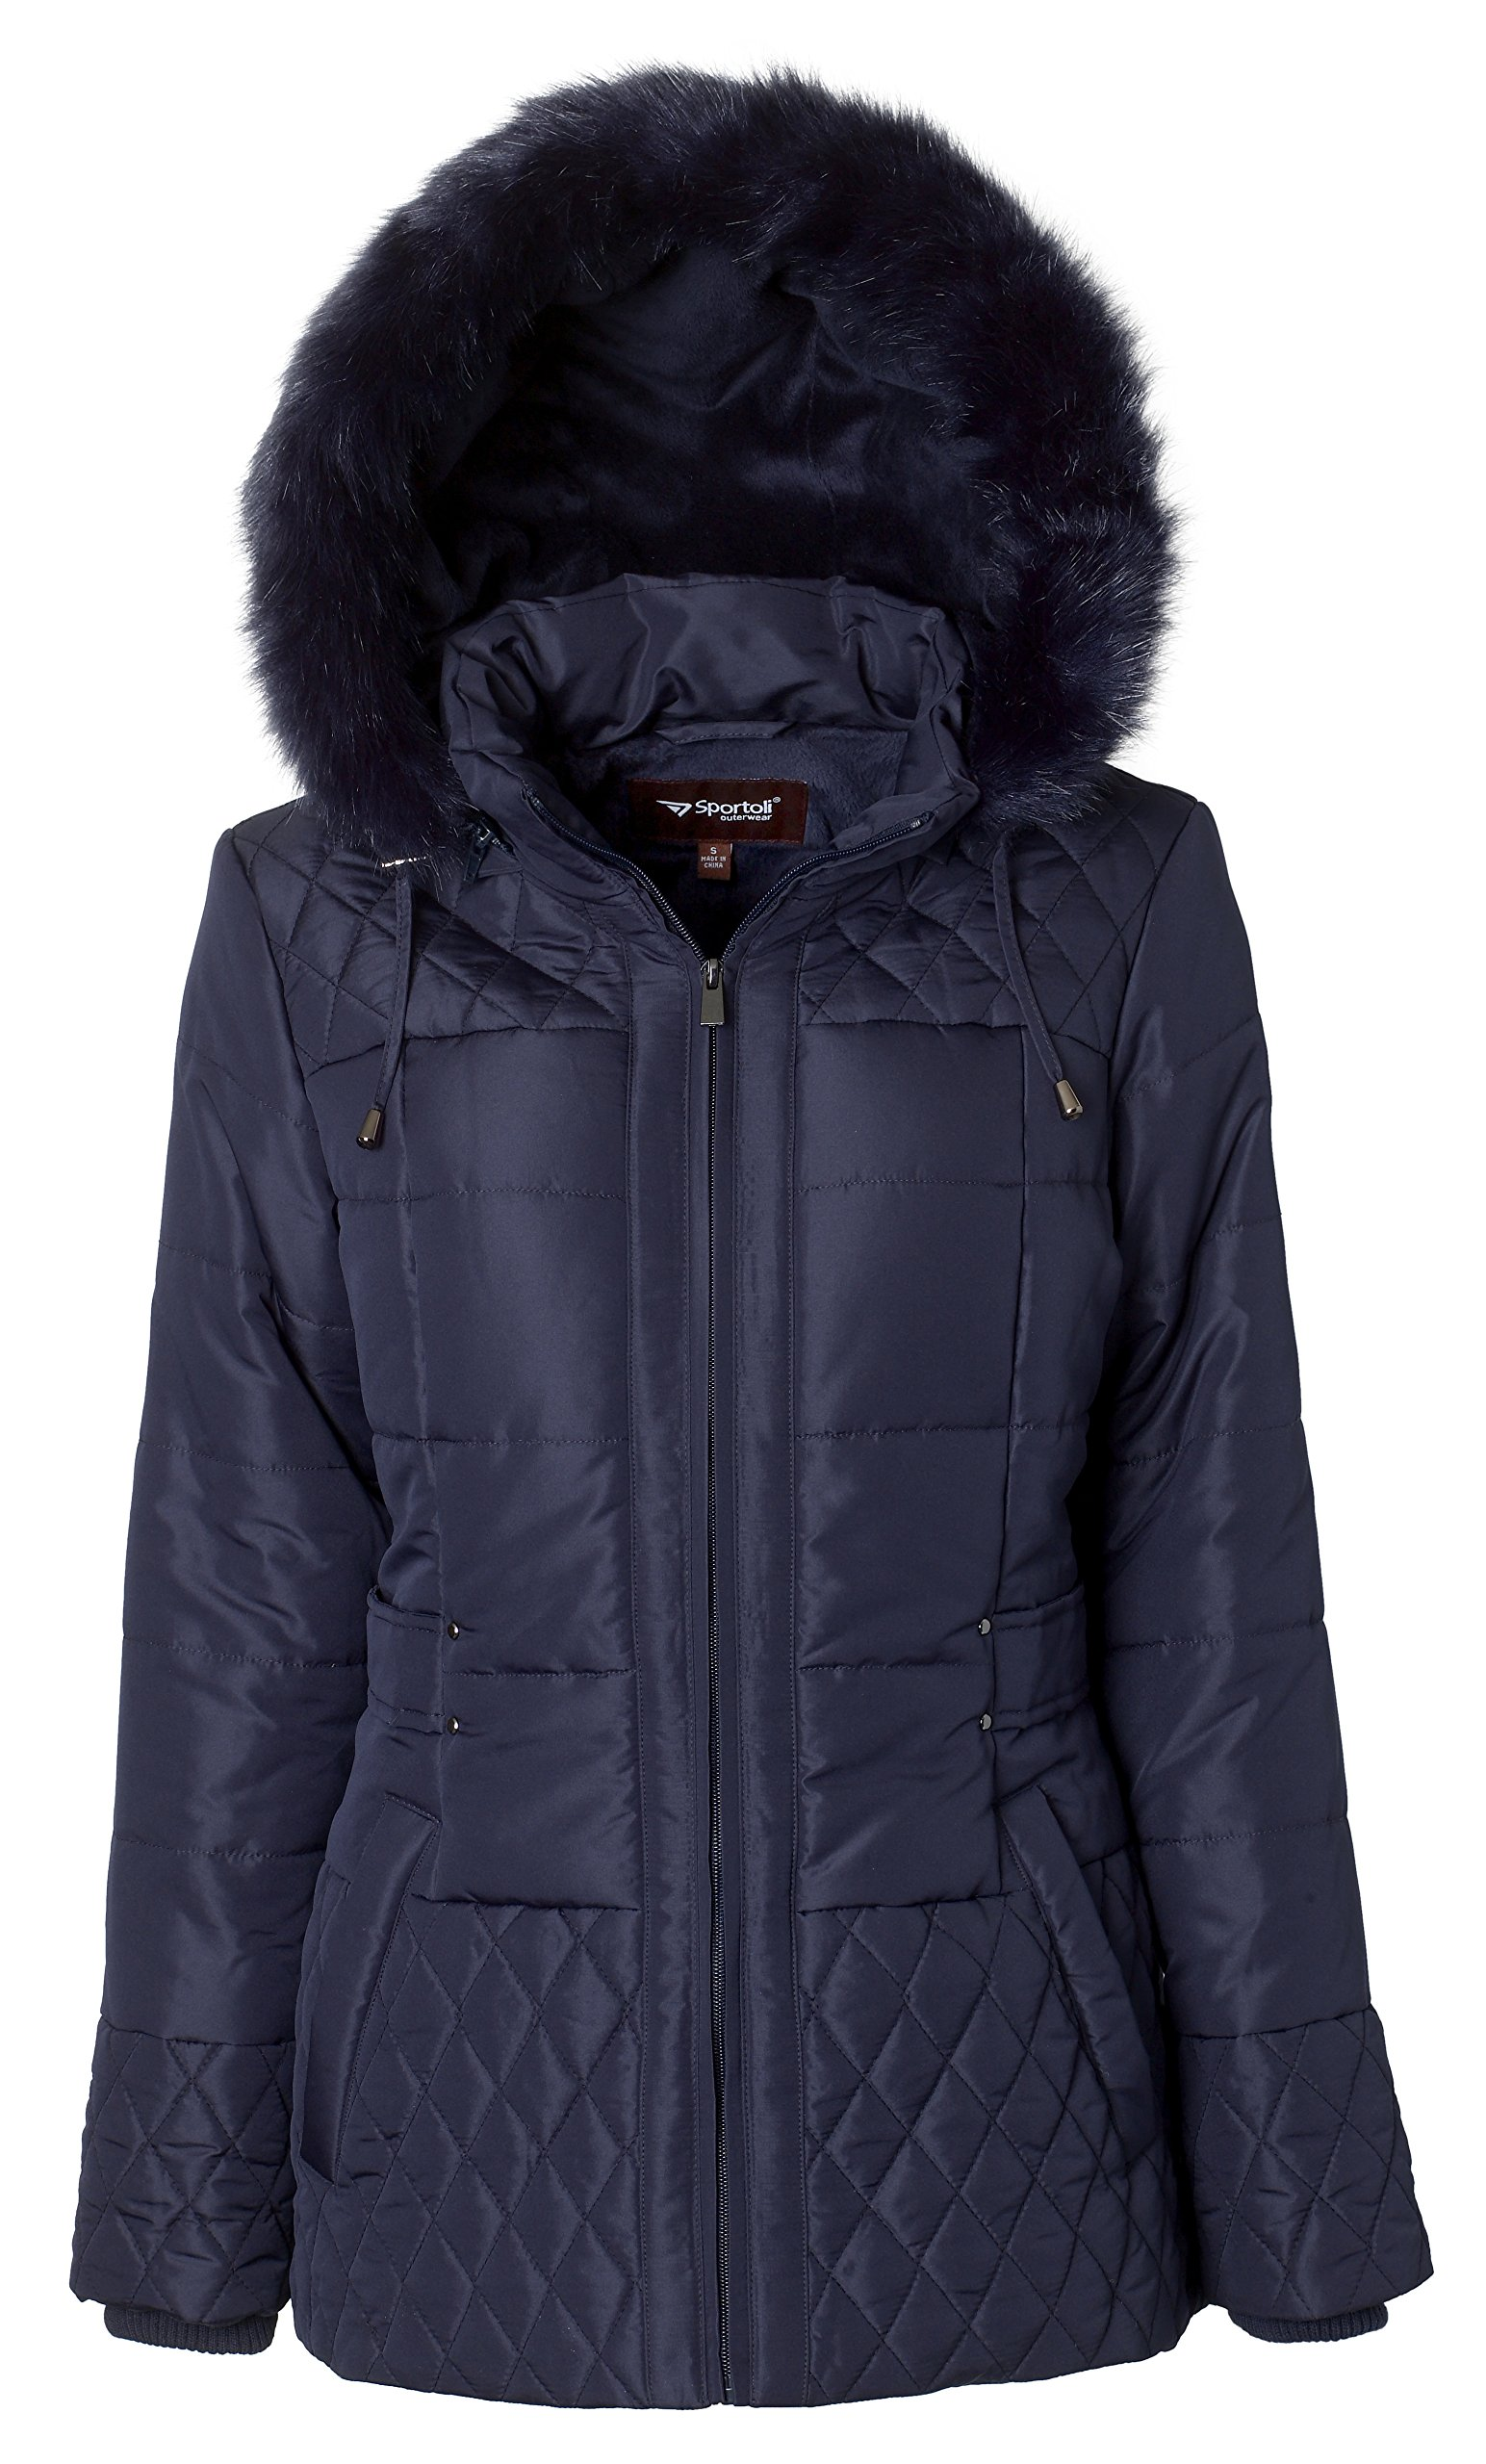 Sportoli Women's Midlength Quilted Trim Down Alternative Plush Lined Puffer Coat with Zip-off Fur Trim Hood - Stormy Night (2X)